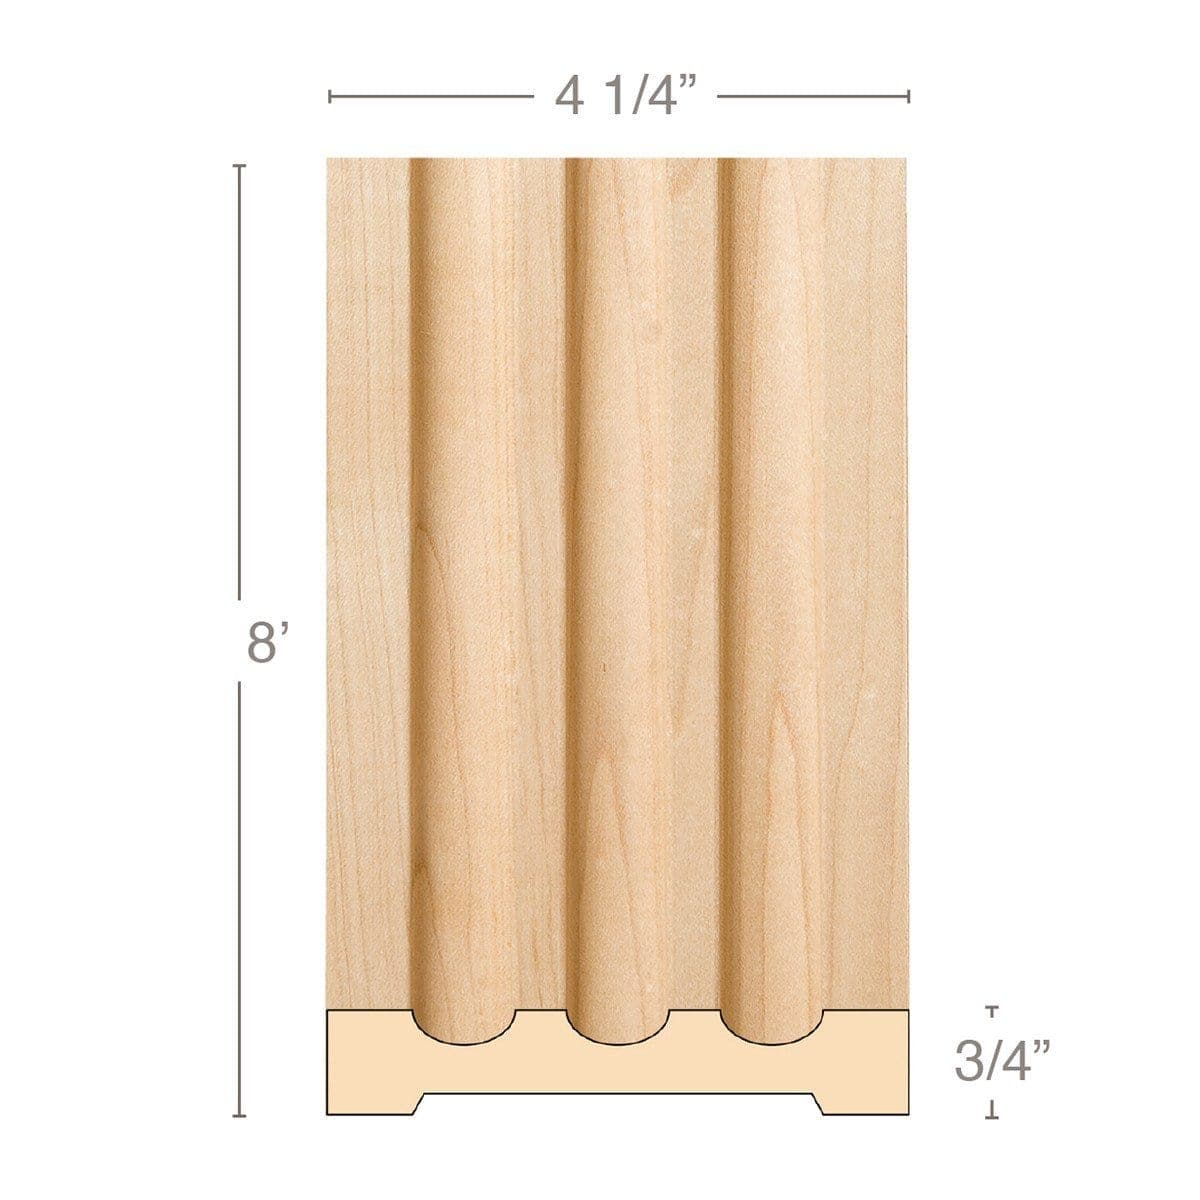 "Large Fluted Pilaster, 4 1/4""w x 3/4""d x 8' length, Resin is priced per 8' length"